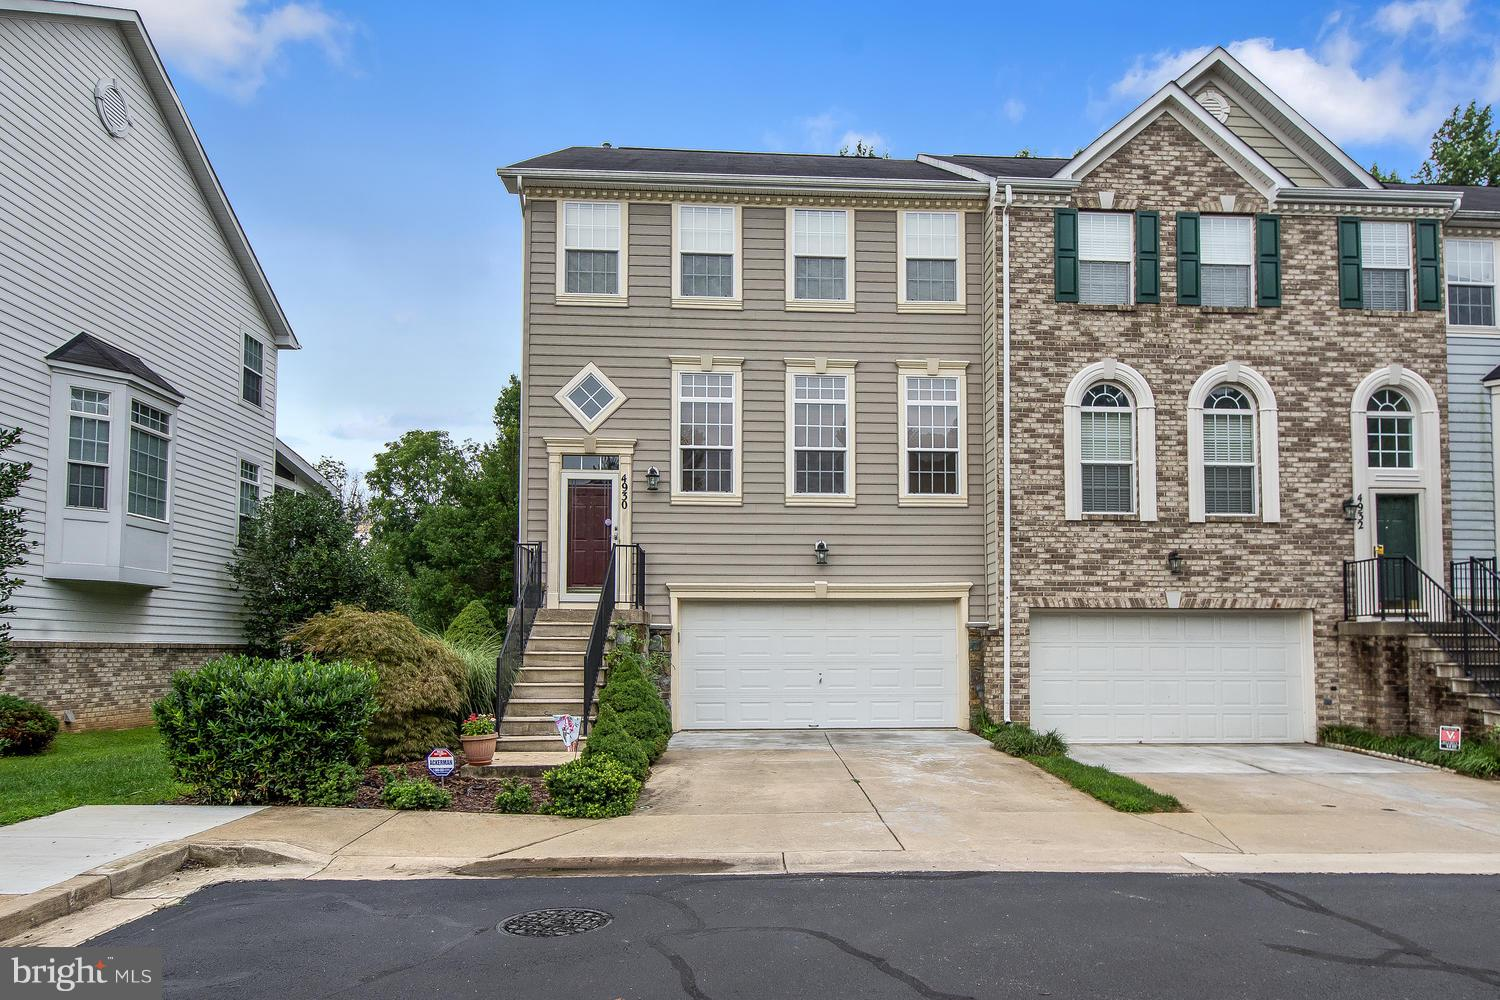 4930 TOTHILL DRIVE, OLNEY, MD 20832